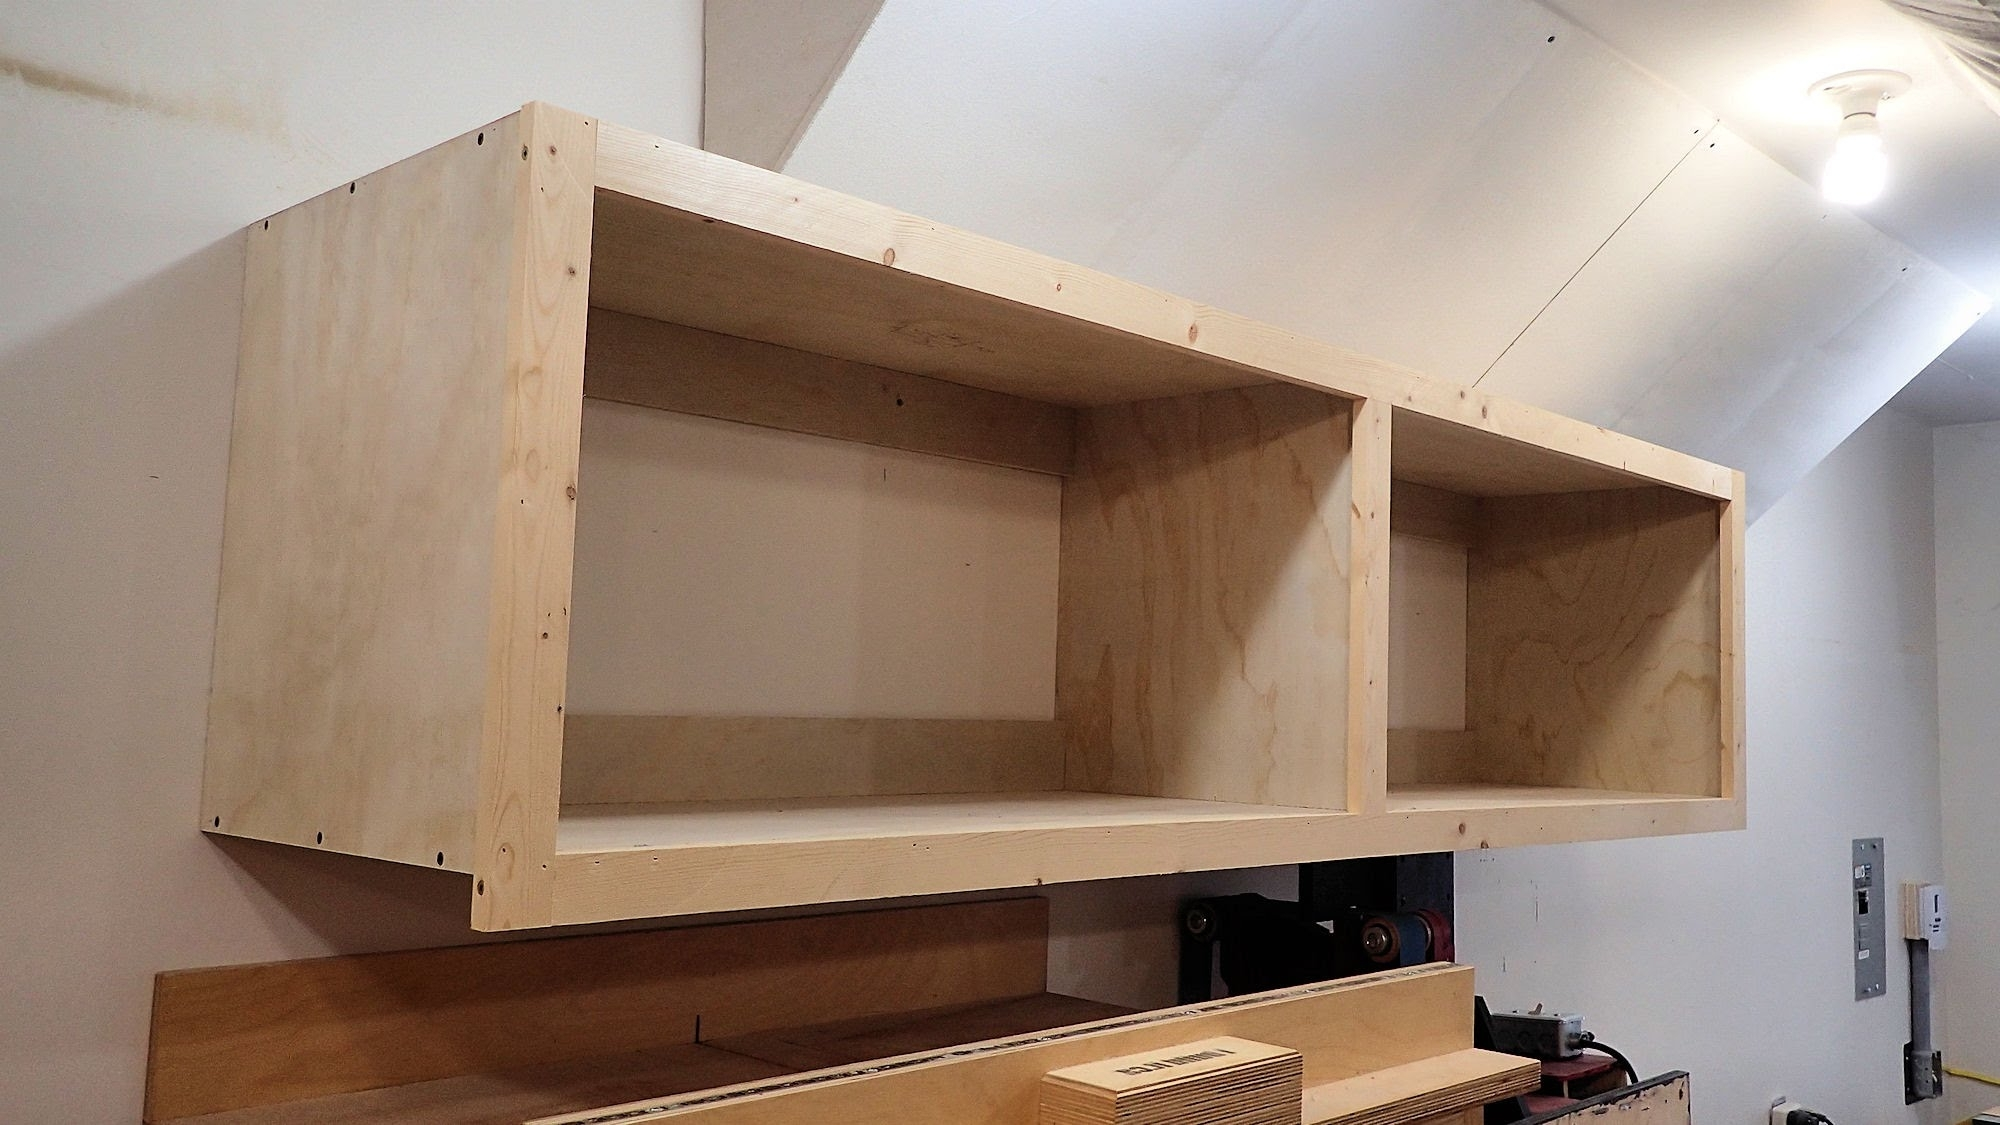 Recent Wall Mounted Storage Cabinet In One Day – Youtube With Regard To Wall Cupboards (View 11 of 15)